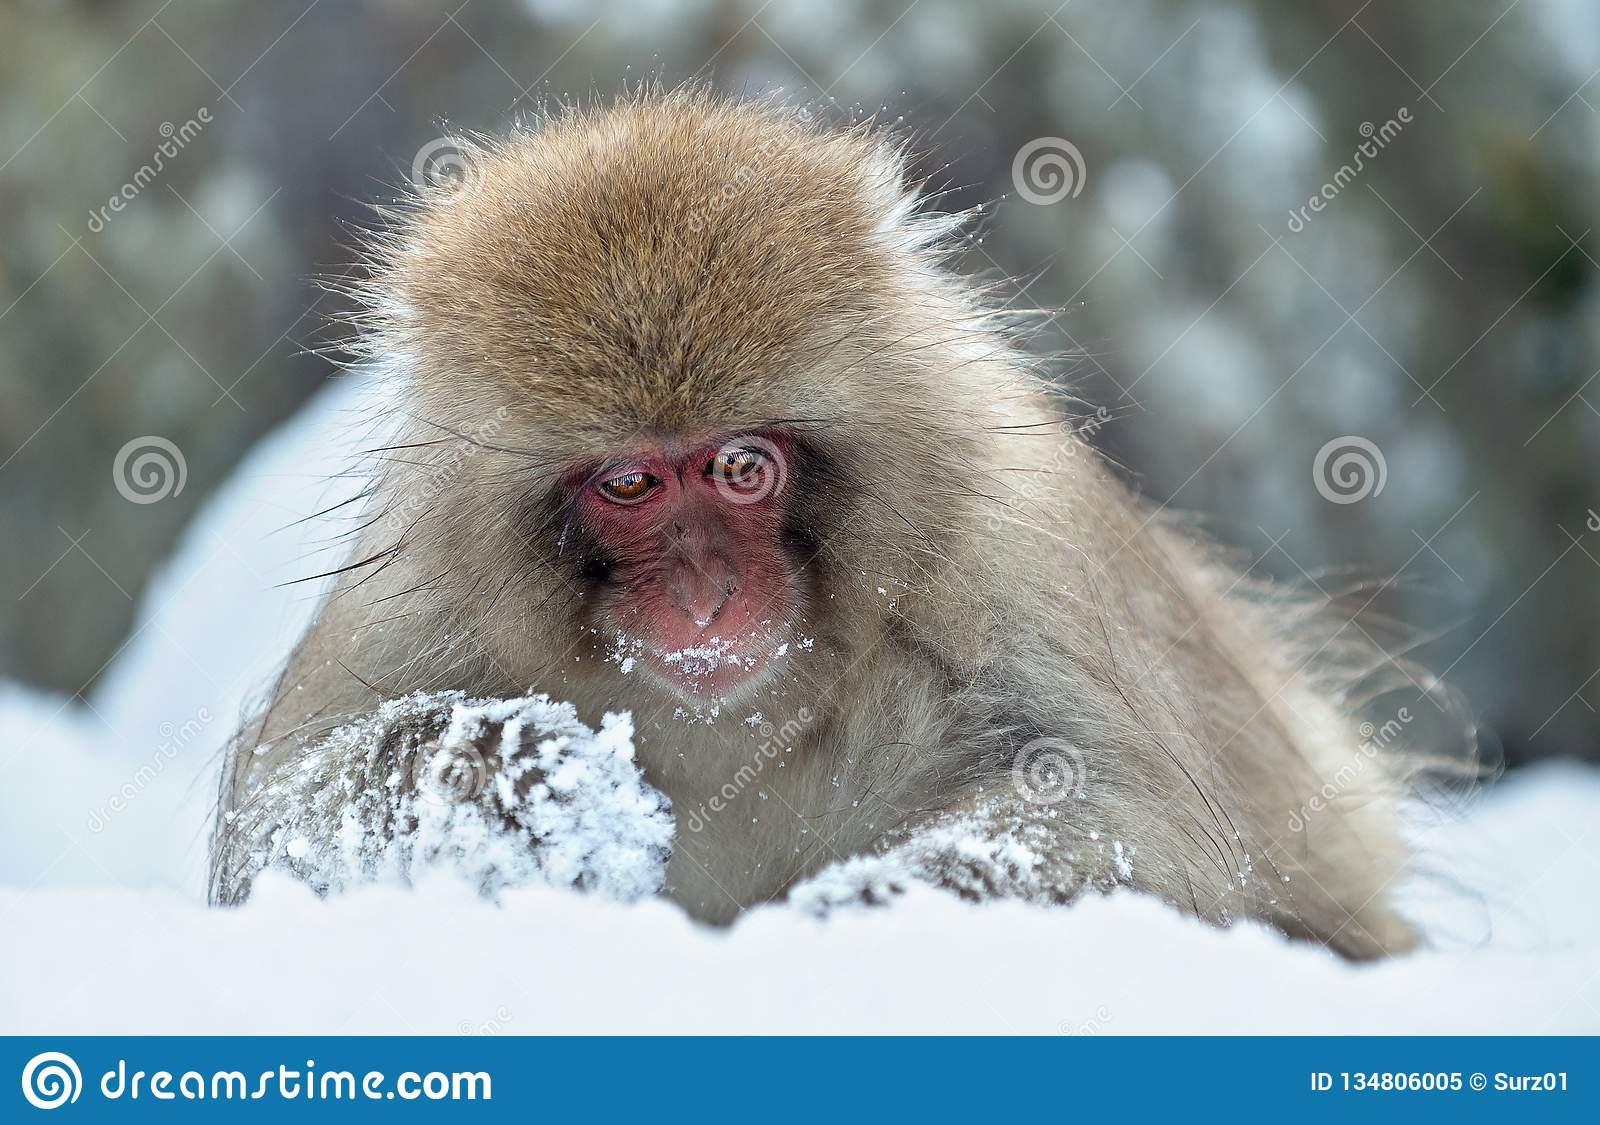 The Japanese macaque. Scientific name: Macaca fuscata Close up portrait